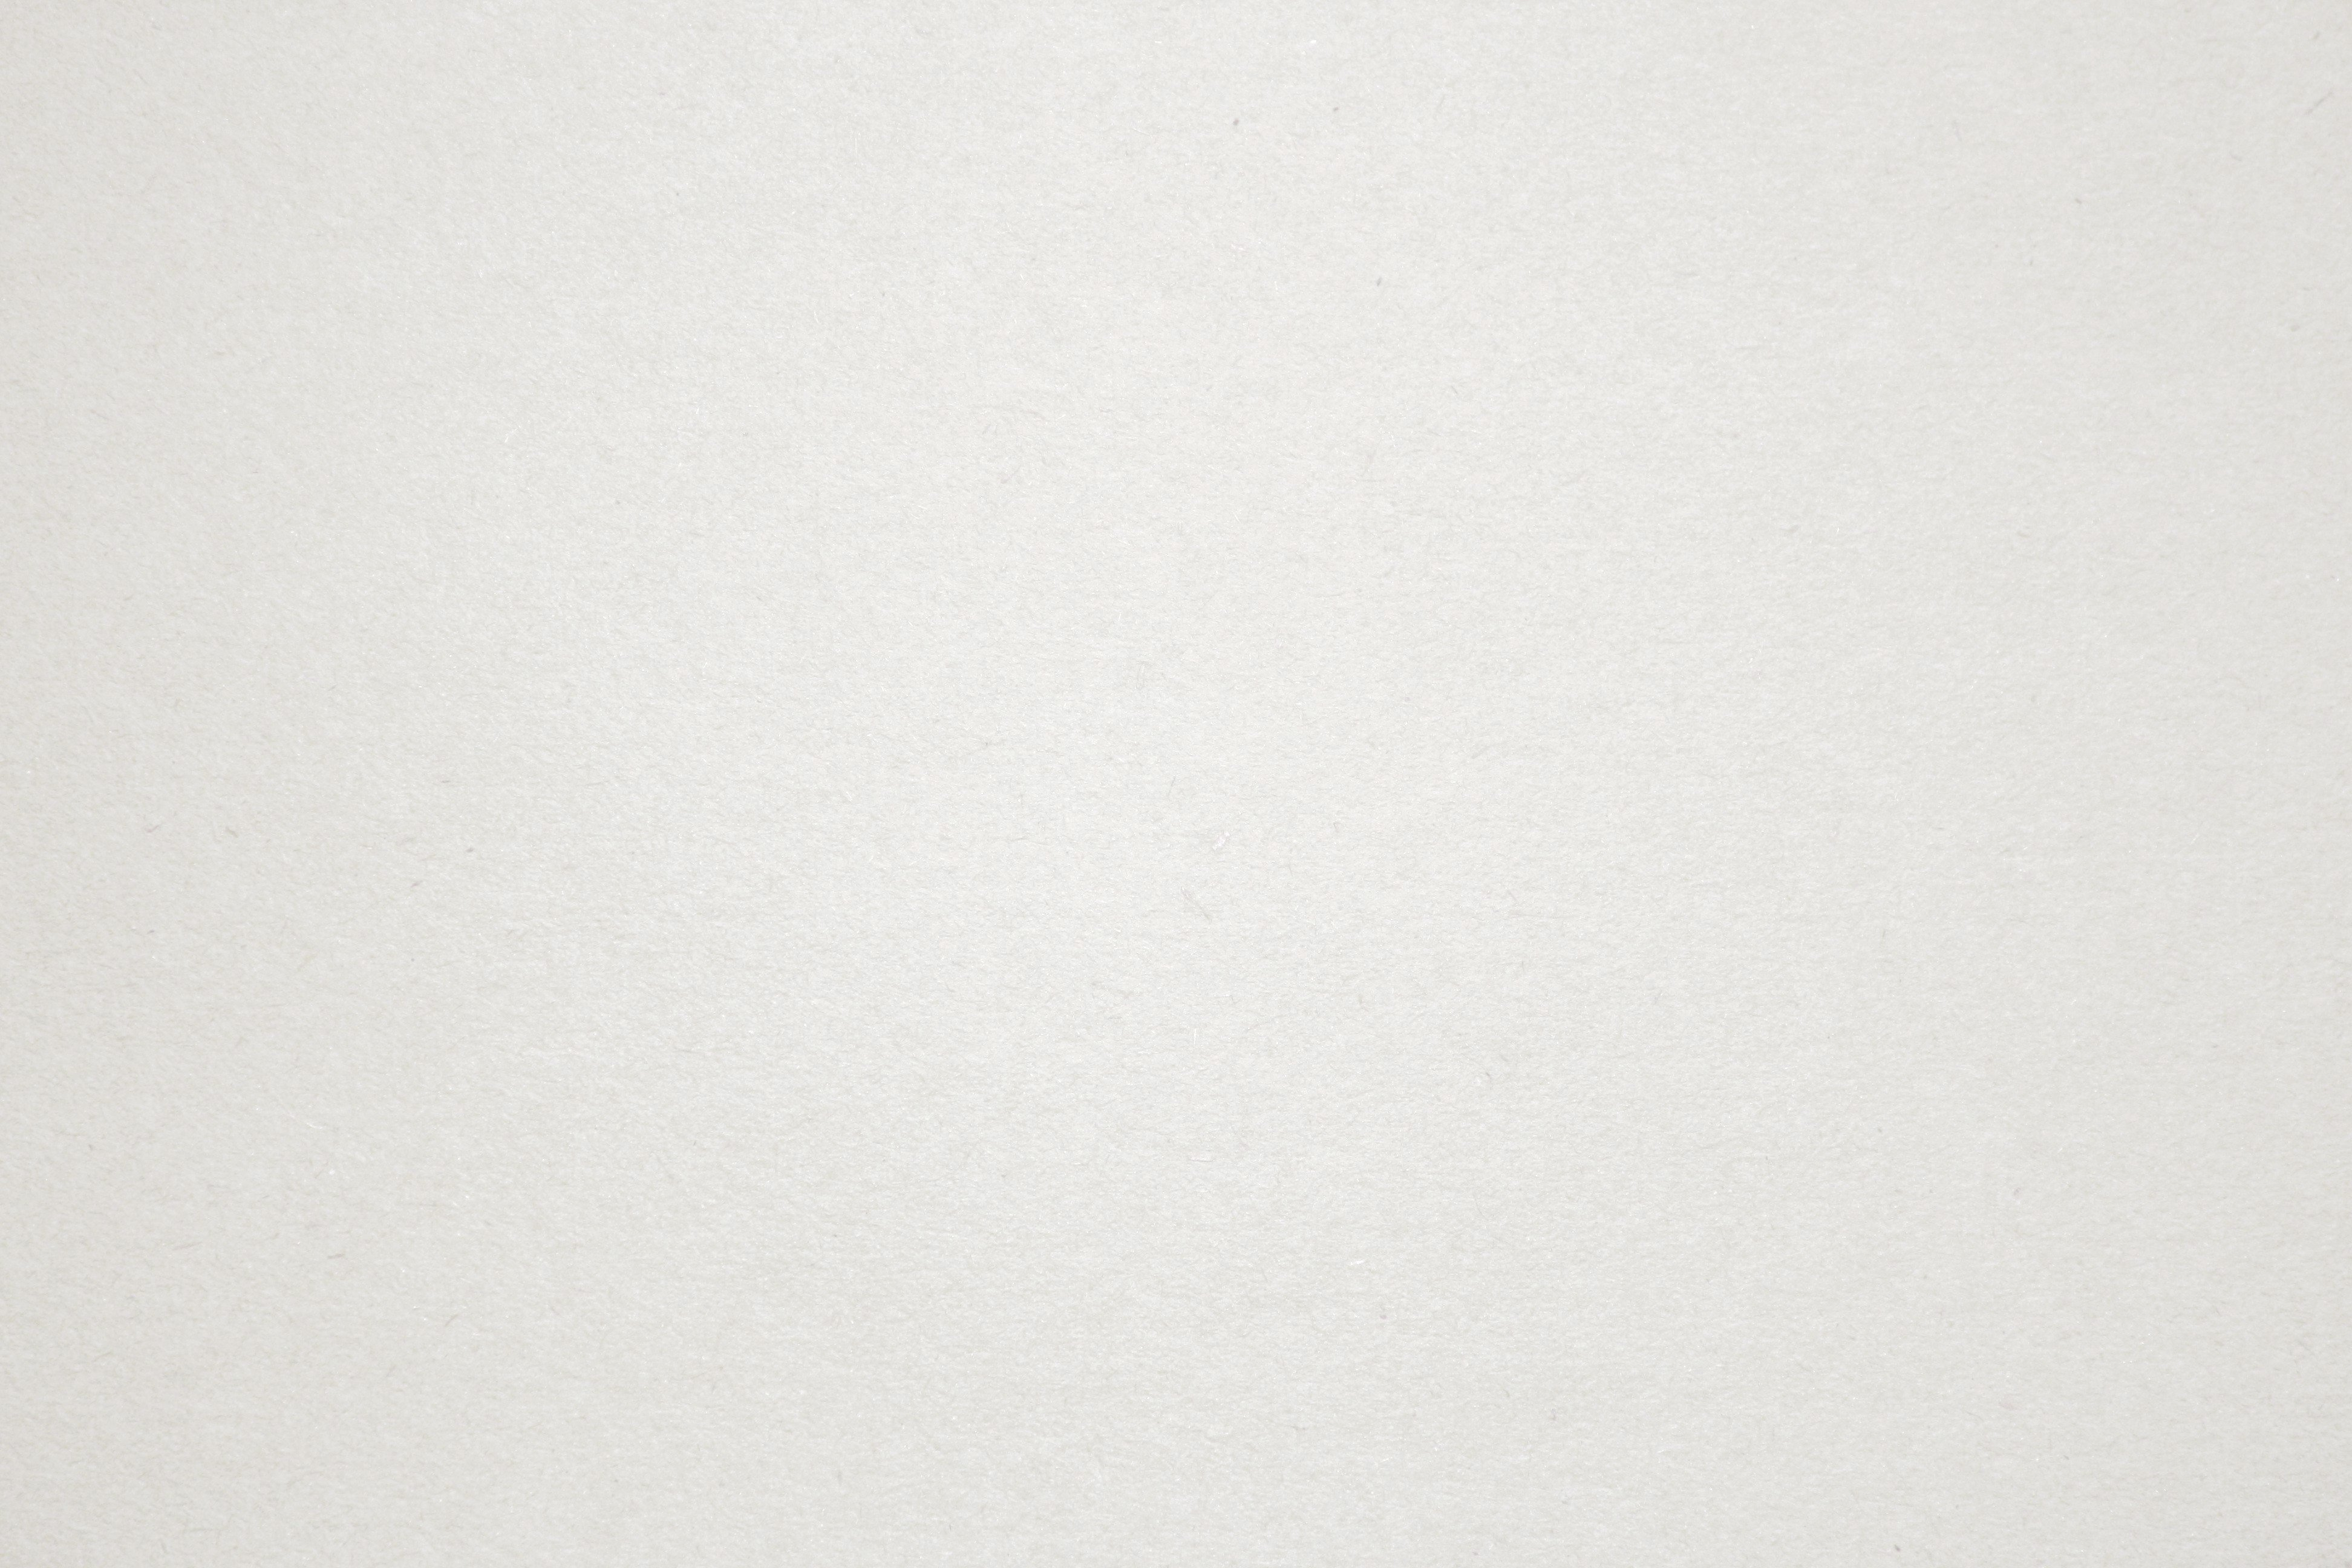 Paper Texture Free Downloads